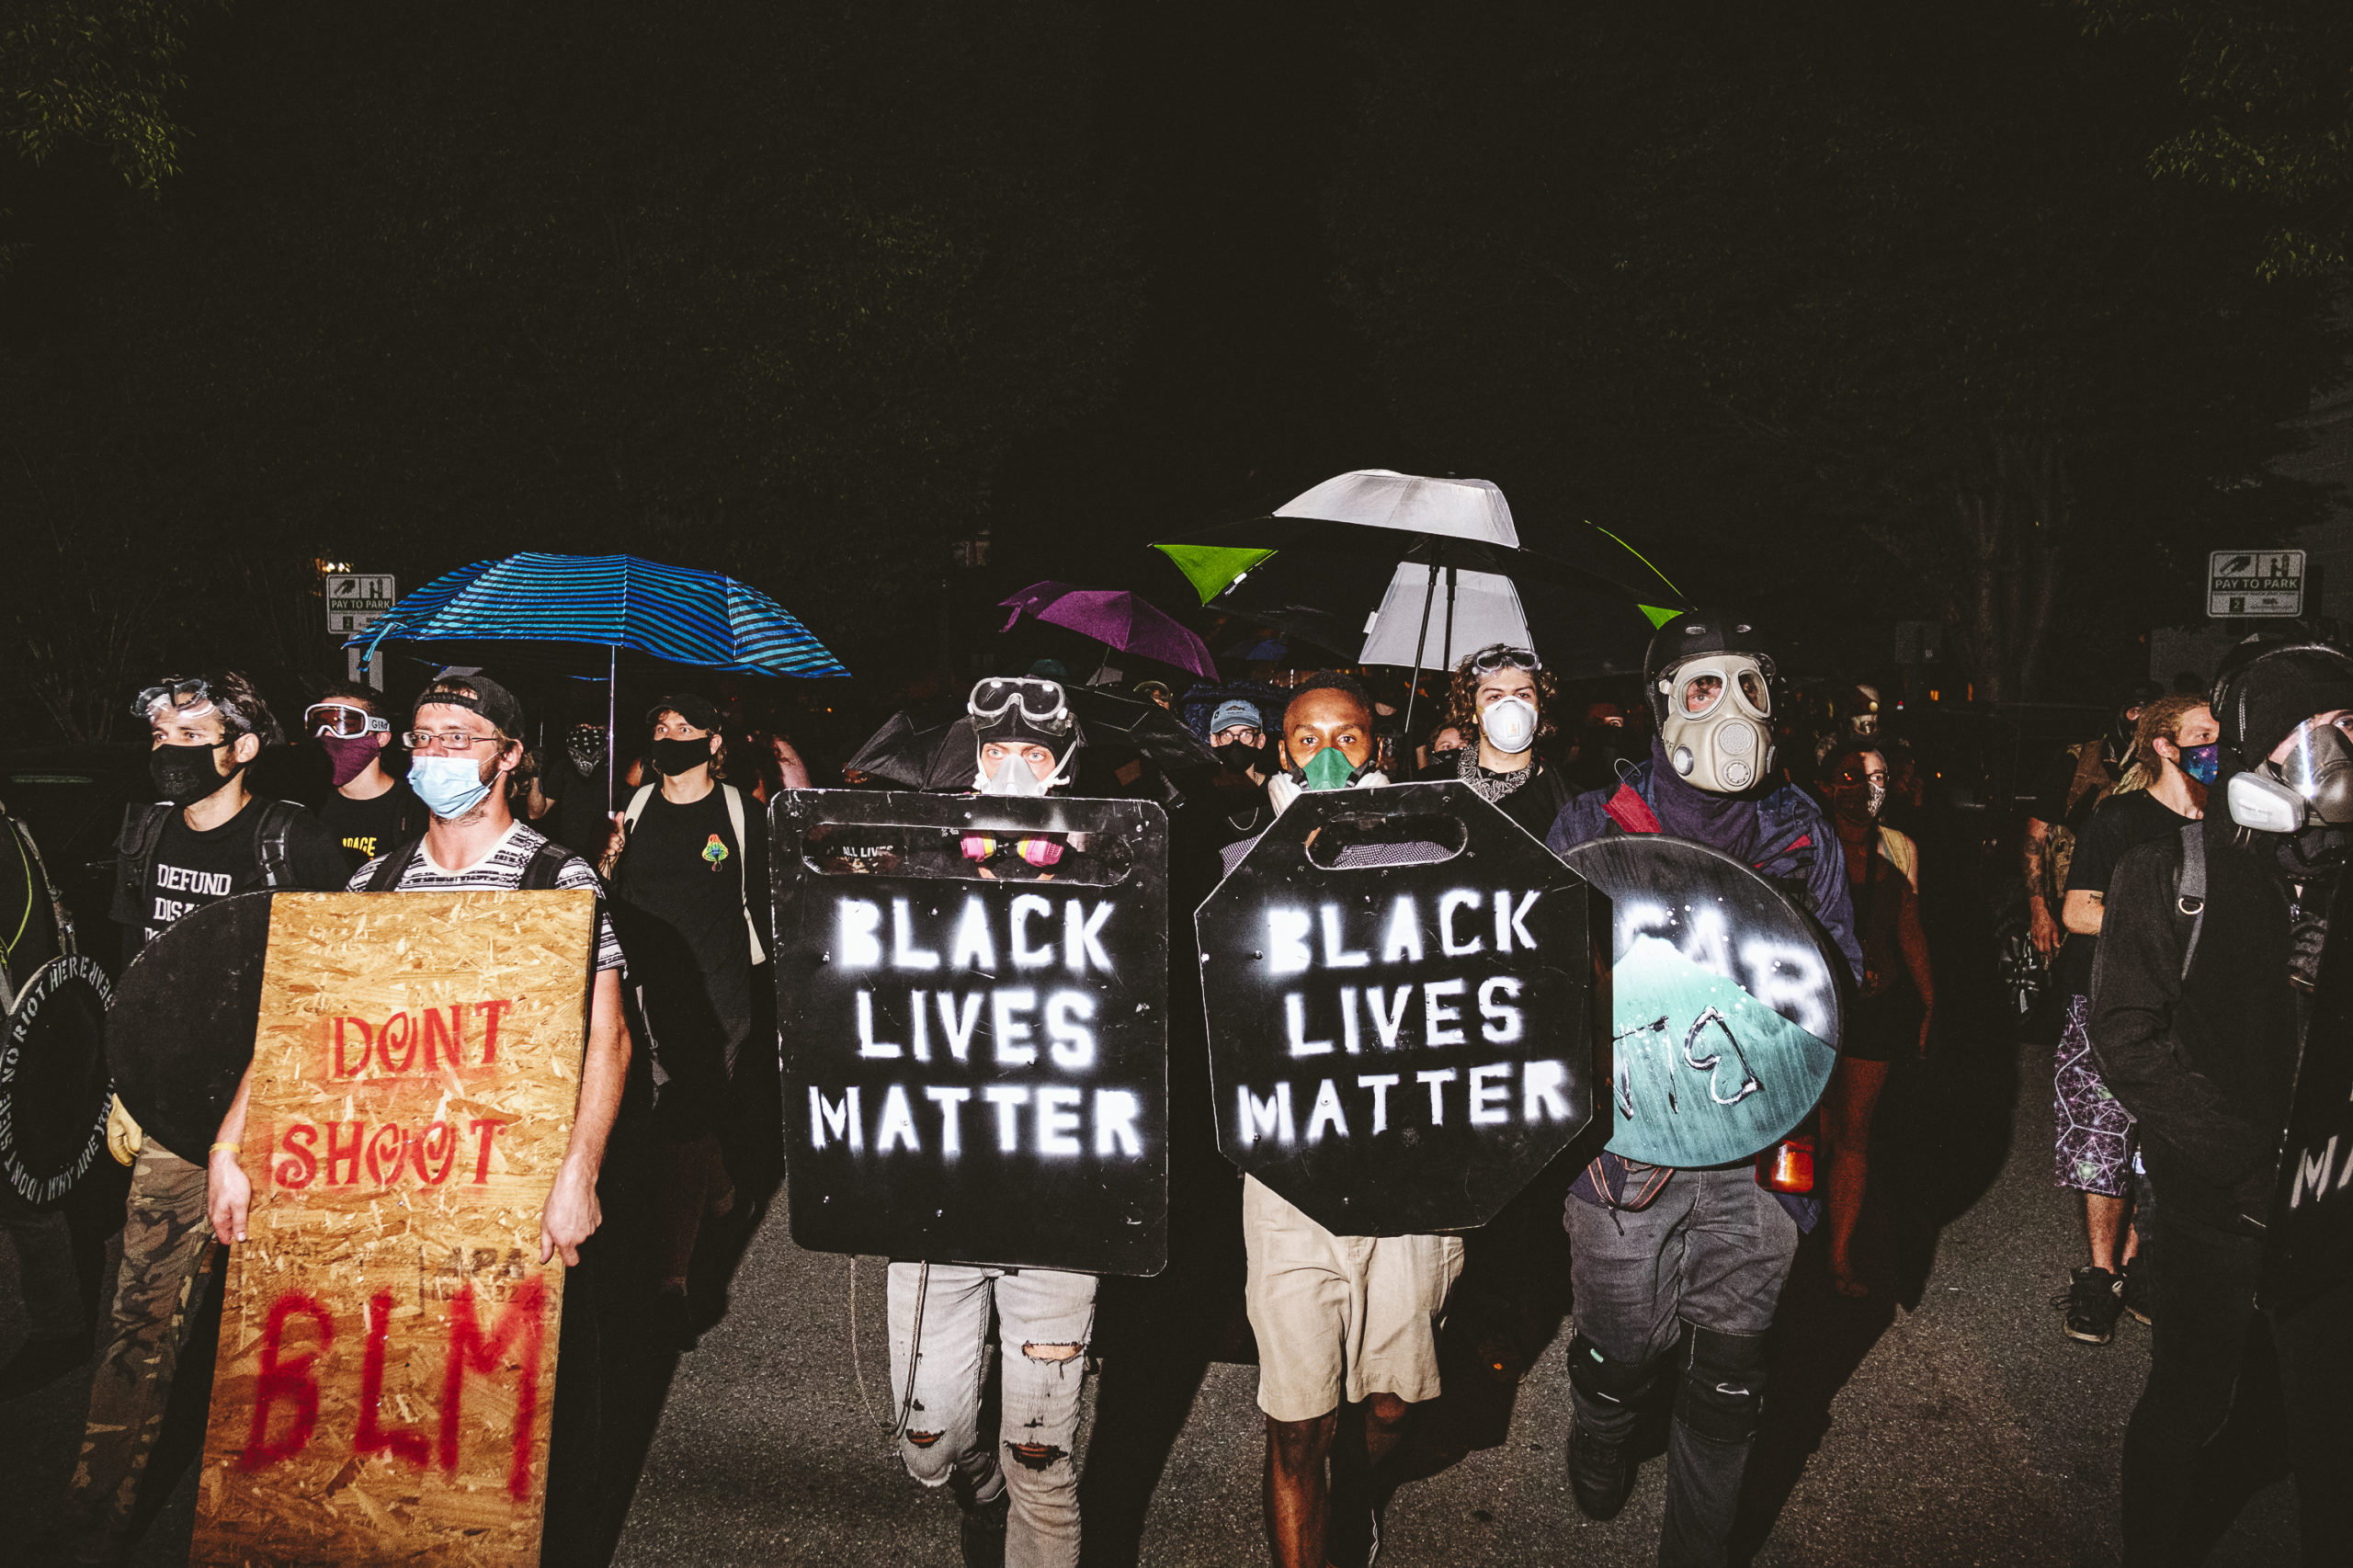 RICHMOND, VA - JULY 25: People carrying homemade Black Lives Matter shields march in front of protesters on July 25, 2020 in Richmond, Virginia. Protesters in Richmond took to the streets to join other protesters around the country for the Stand With Portland rally in support of the Black Lives Matter protesters in Portland, Oregon. (Eze Amos/Getty Images)